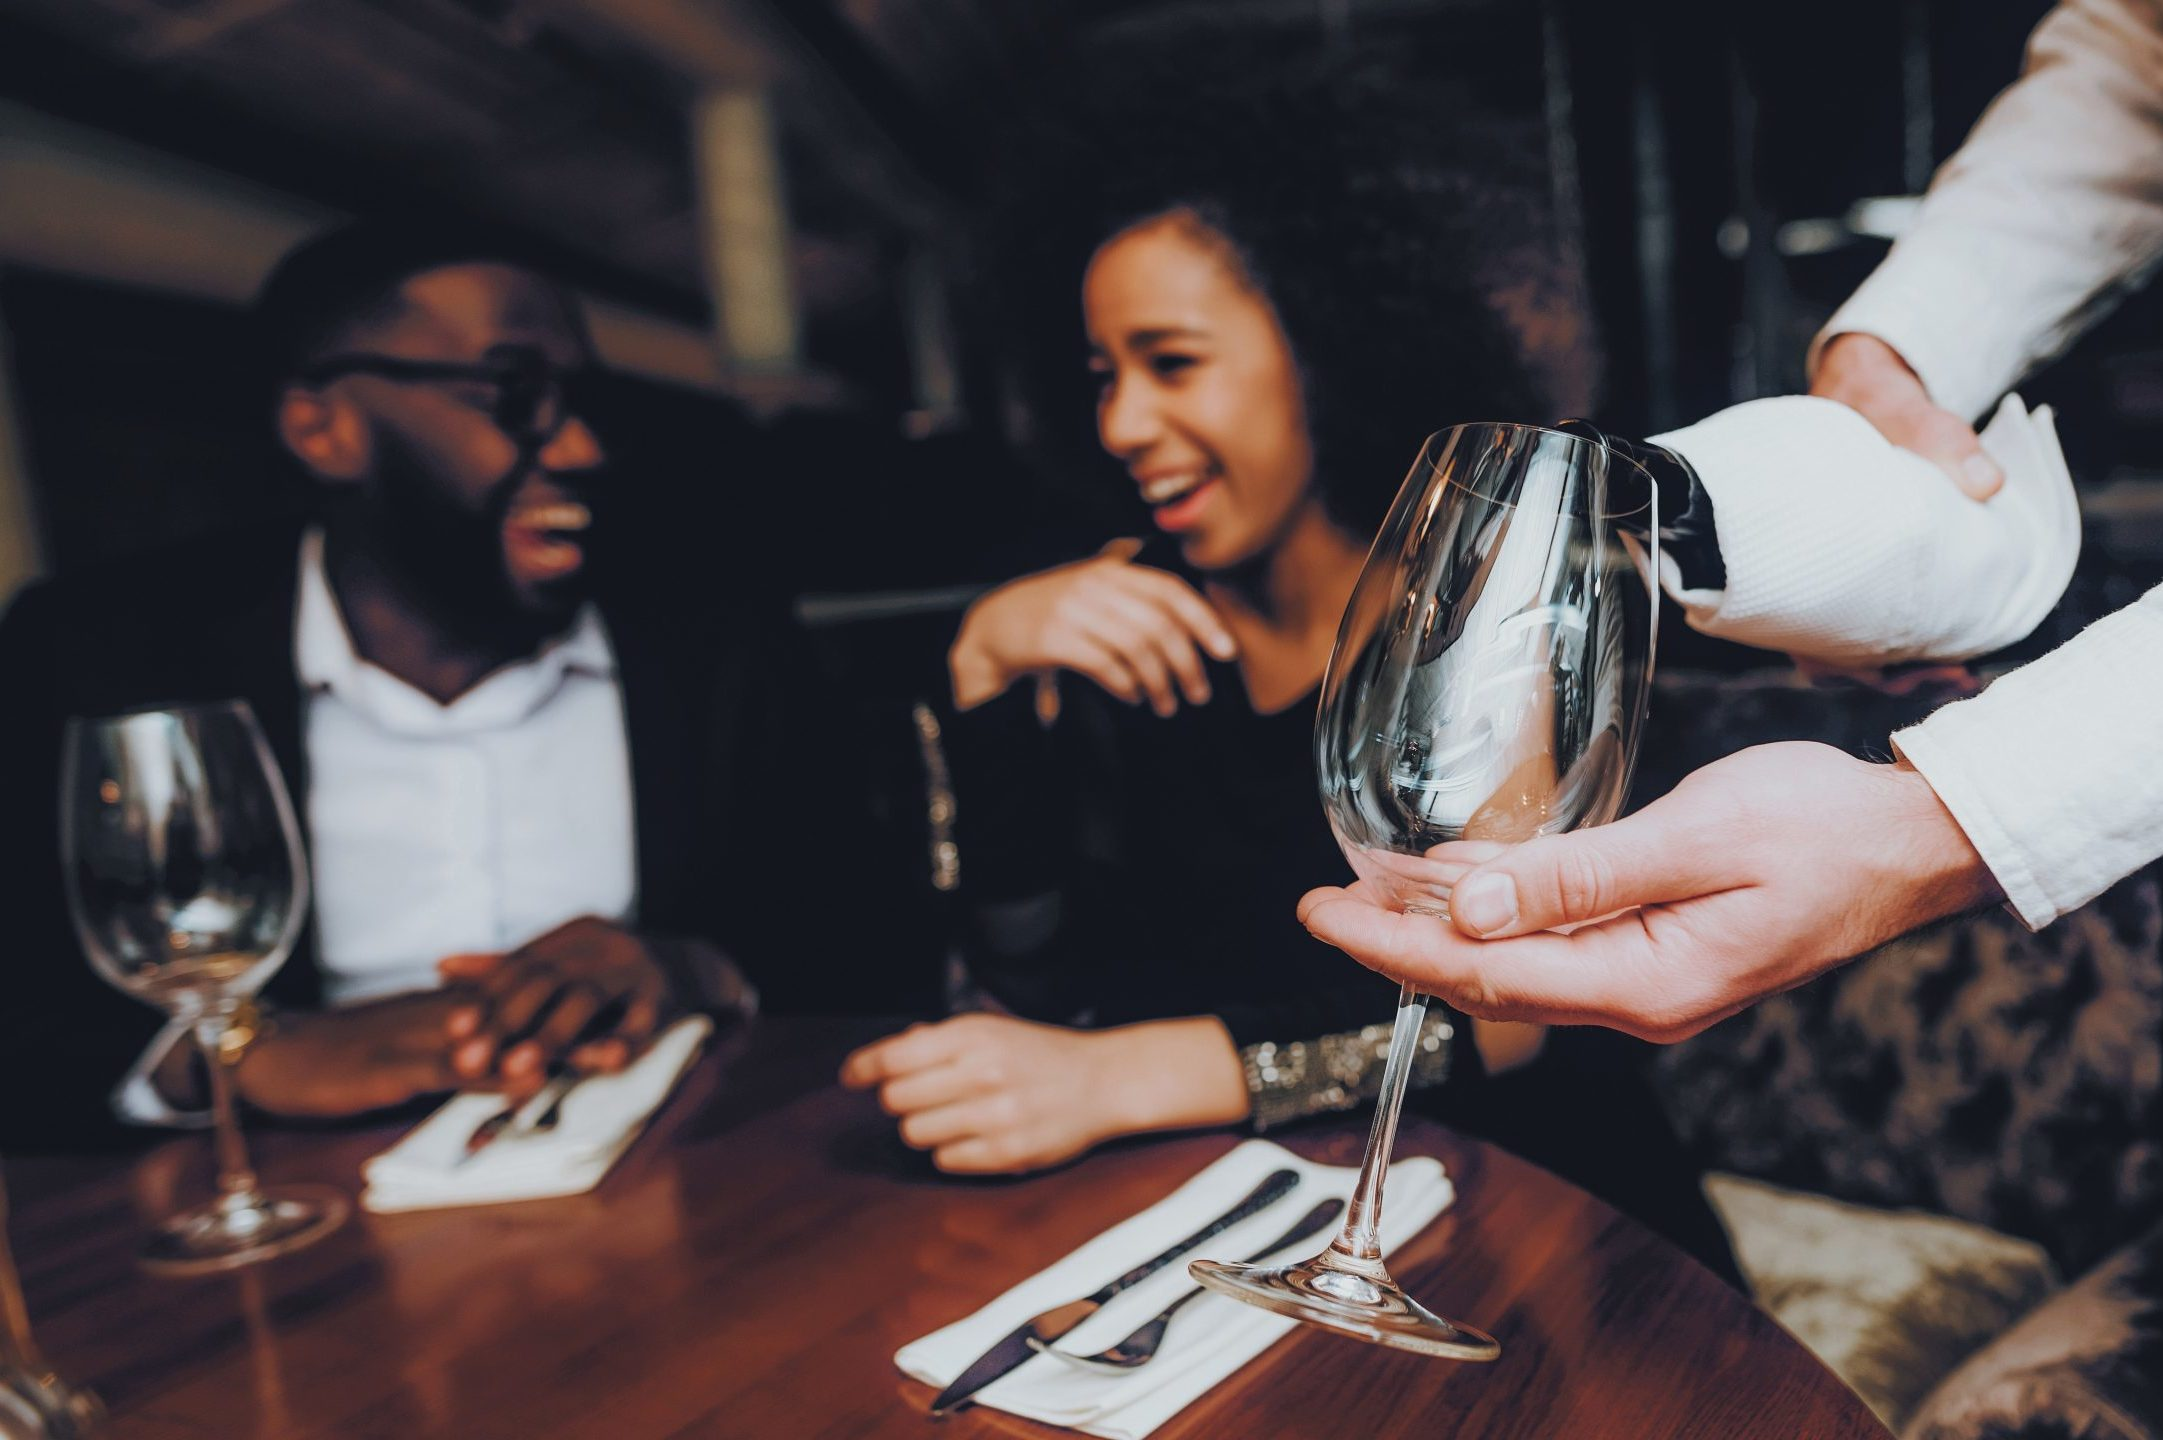 Waiter Pouring Wine to Glass Couple in Restaurant. Romantic African American Couple in Love Dating. Cheerful Man and Woman Drinking Red Wine. Romantic Concept. Anniversary. Bottle of Red Wine.